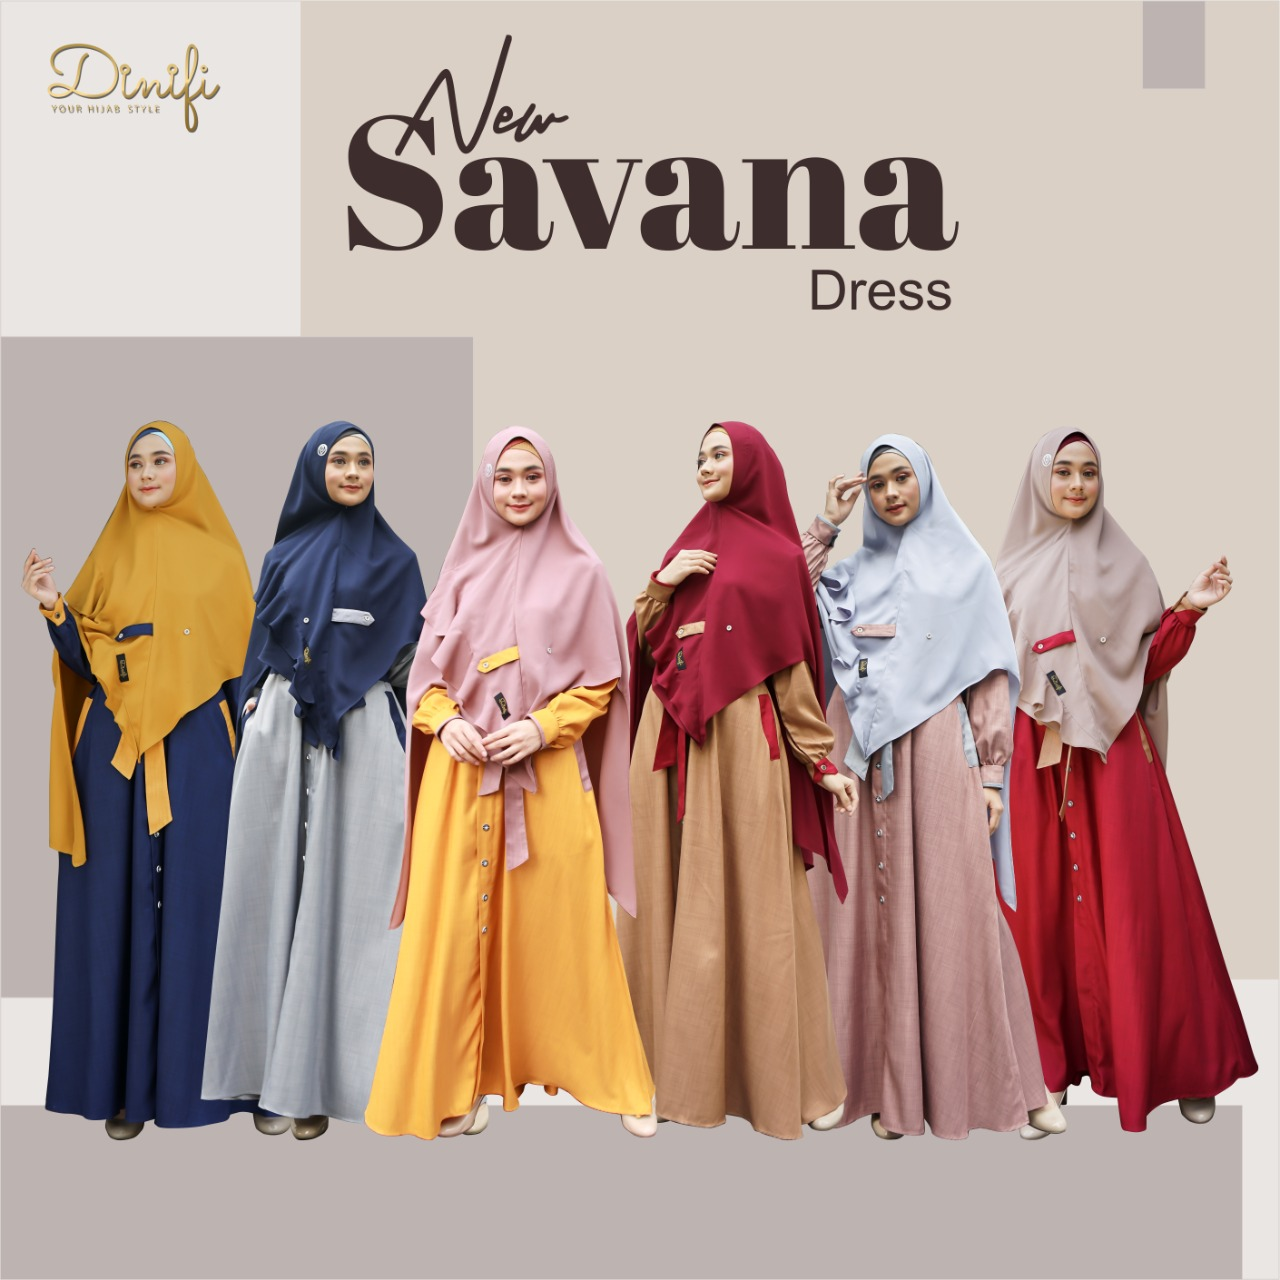 New Savana Dress